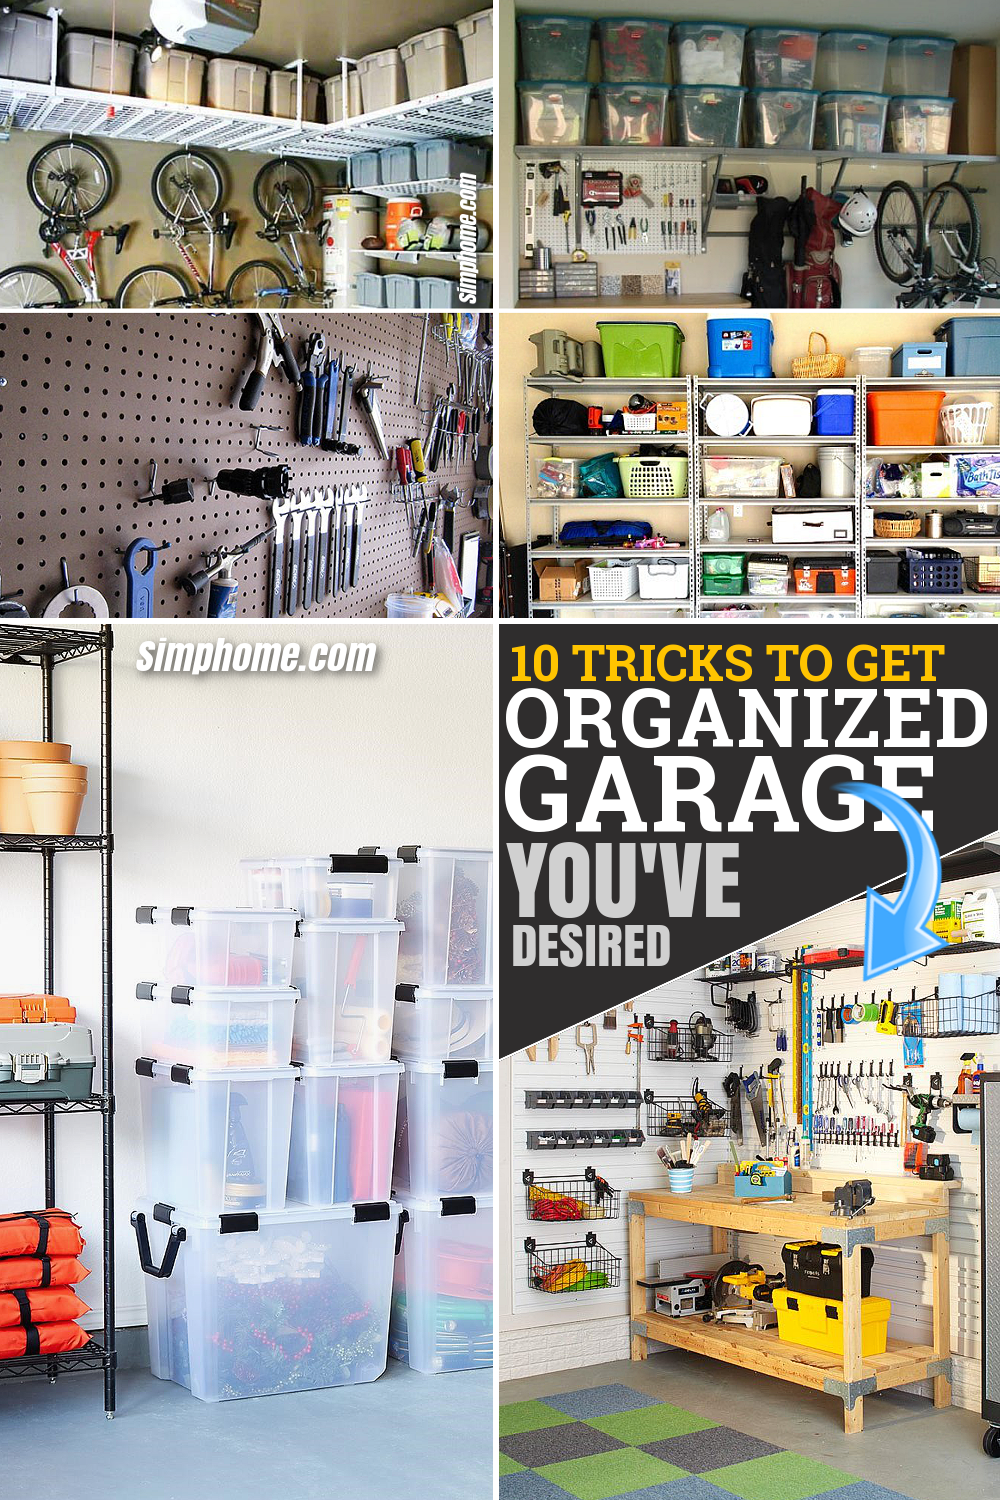 10 TRICKS By SIMPHOME.COM TO GET ORGANIZED GARAGE YOU DESIRE Pinterest Featured Image